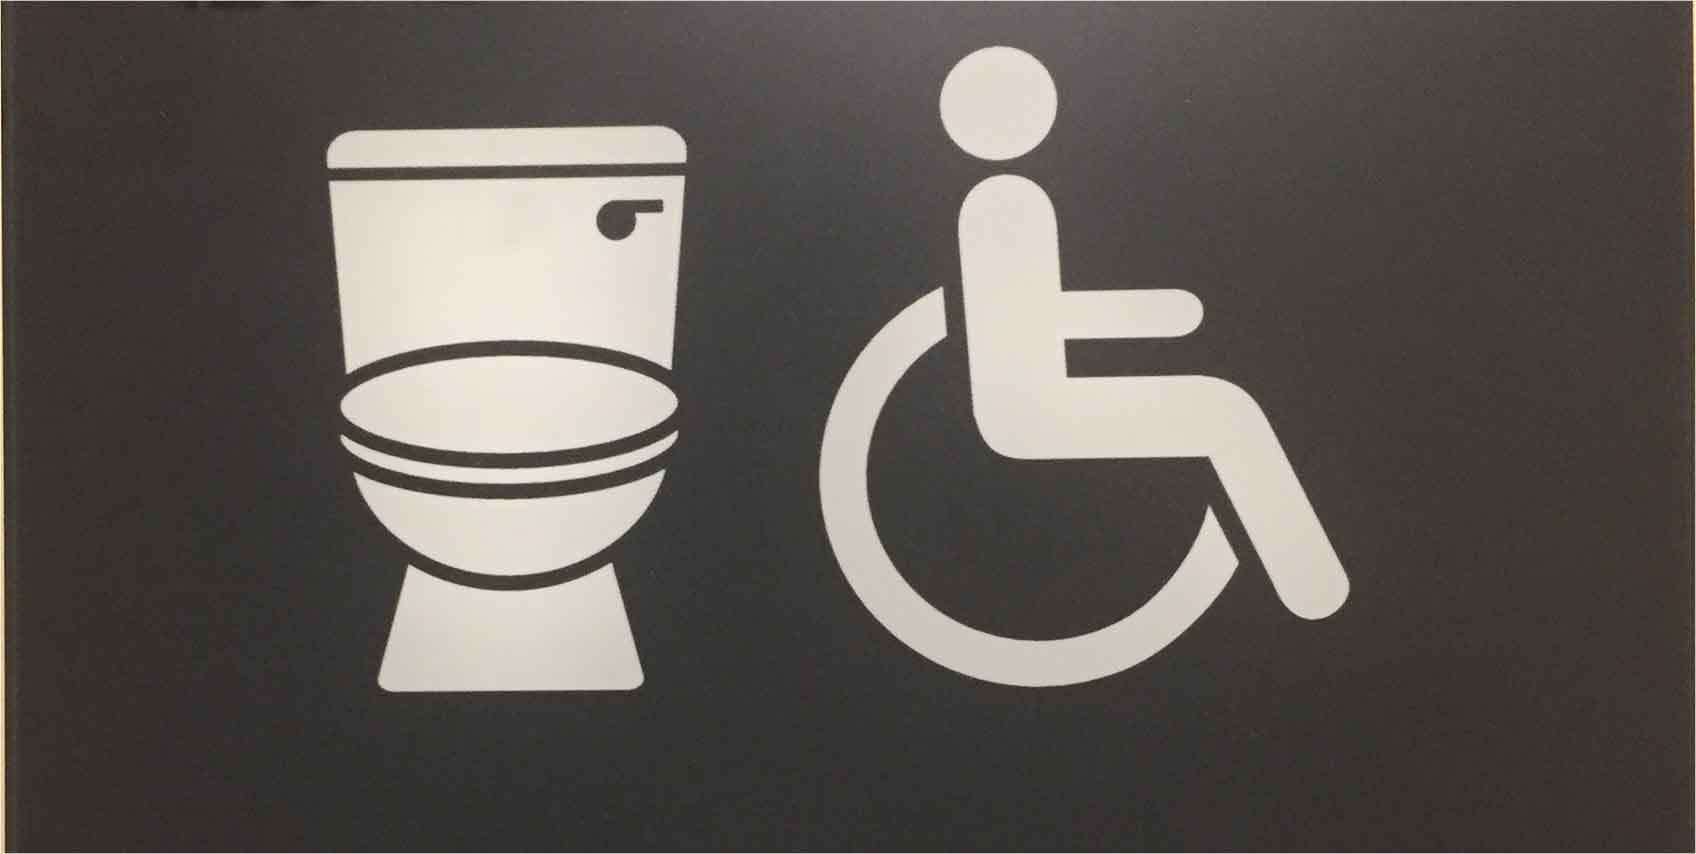 image of a toilet and accessible bathroom